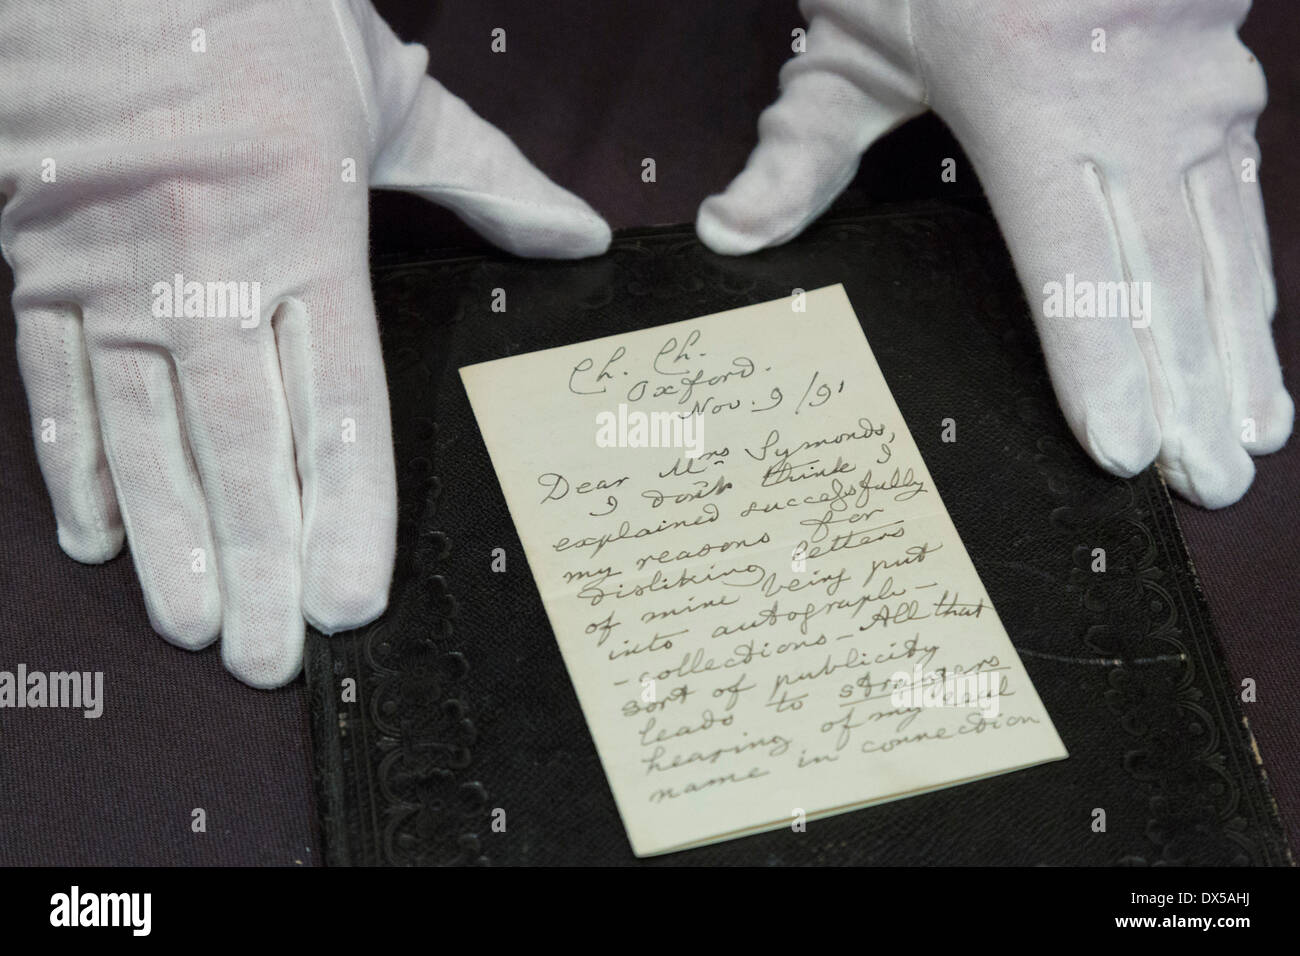 London, UK, 18 March 2014. The letter from Alice in Wonderland author Lewis Carroll (under his real name Charles Dodgson) to a friend complaining about the drawbacks of fame goes under the hammer and is expected to fetch £3,000-£4,000. In the letter, Carroll says he hated publicity so intensely that 'sometimes I almost wish I had never written any books at all'. The Bonhams' Books, Maps, Manuscripts and Historical Photographs auction takes place on 19 March 2014. Credit:  Nick Savage/Alamy Live News - Stock Image